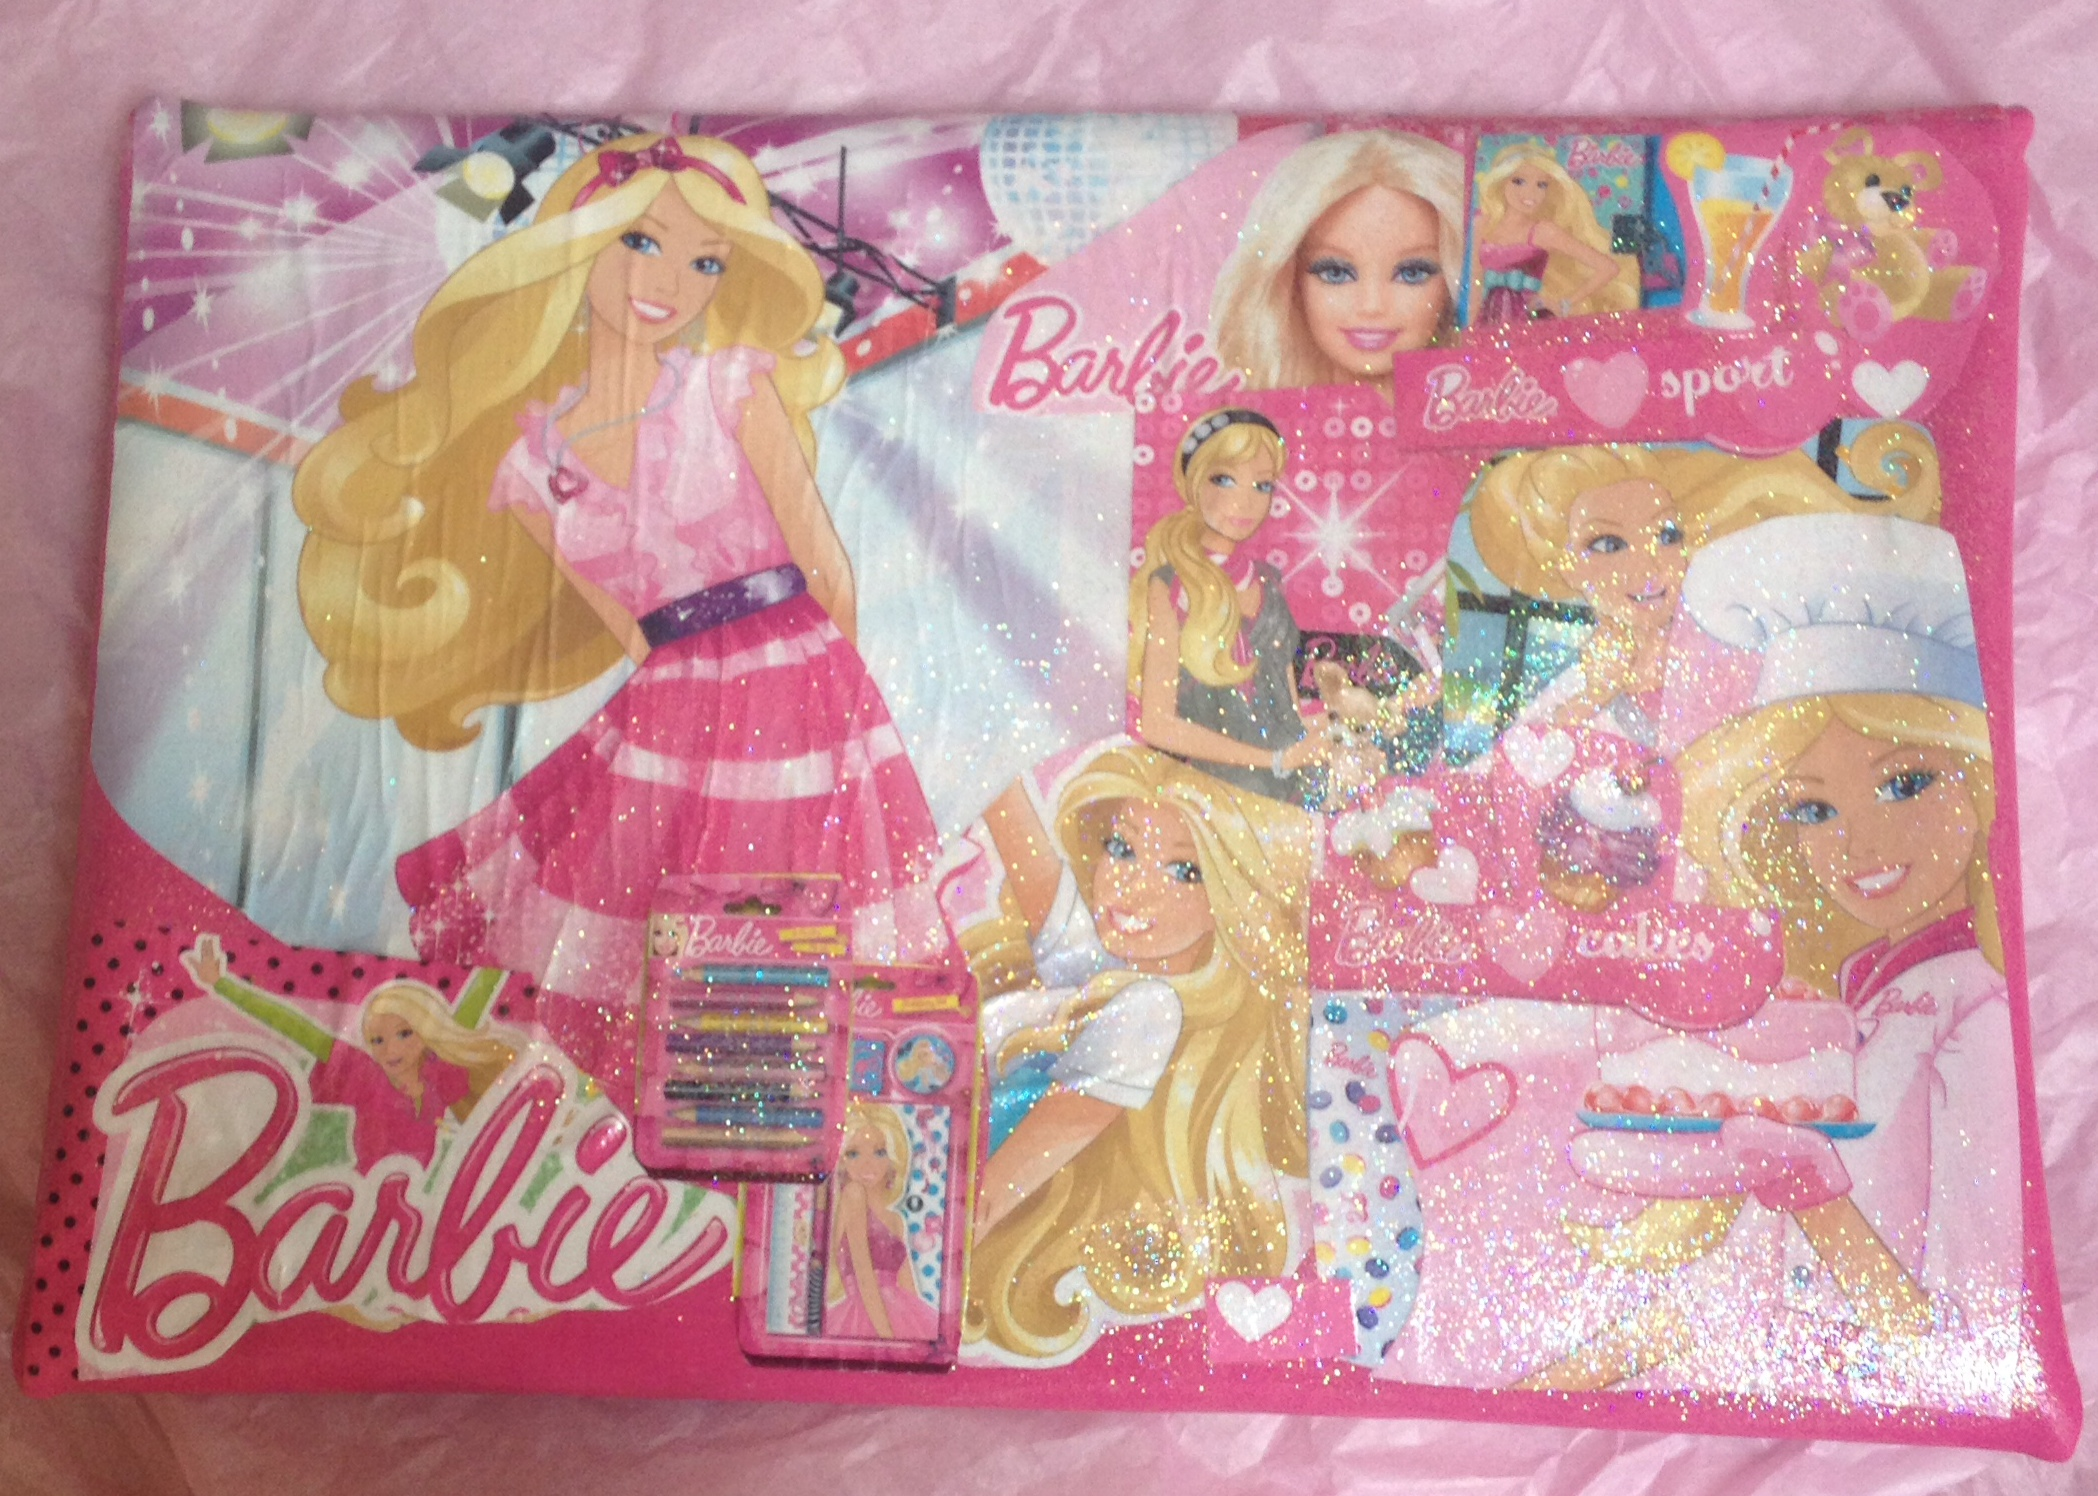 Barbie bag back